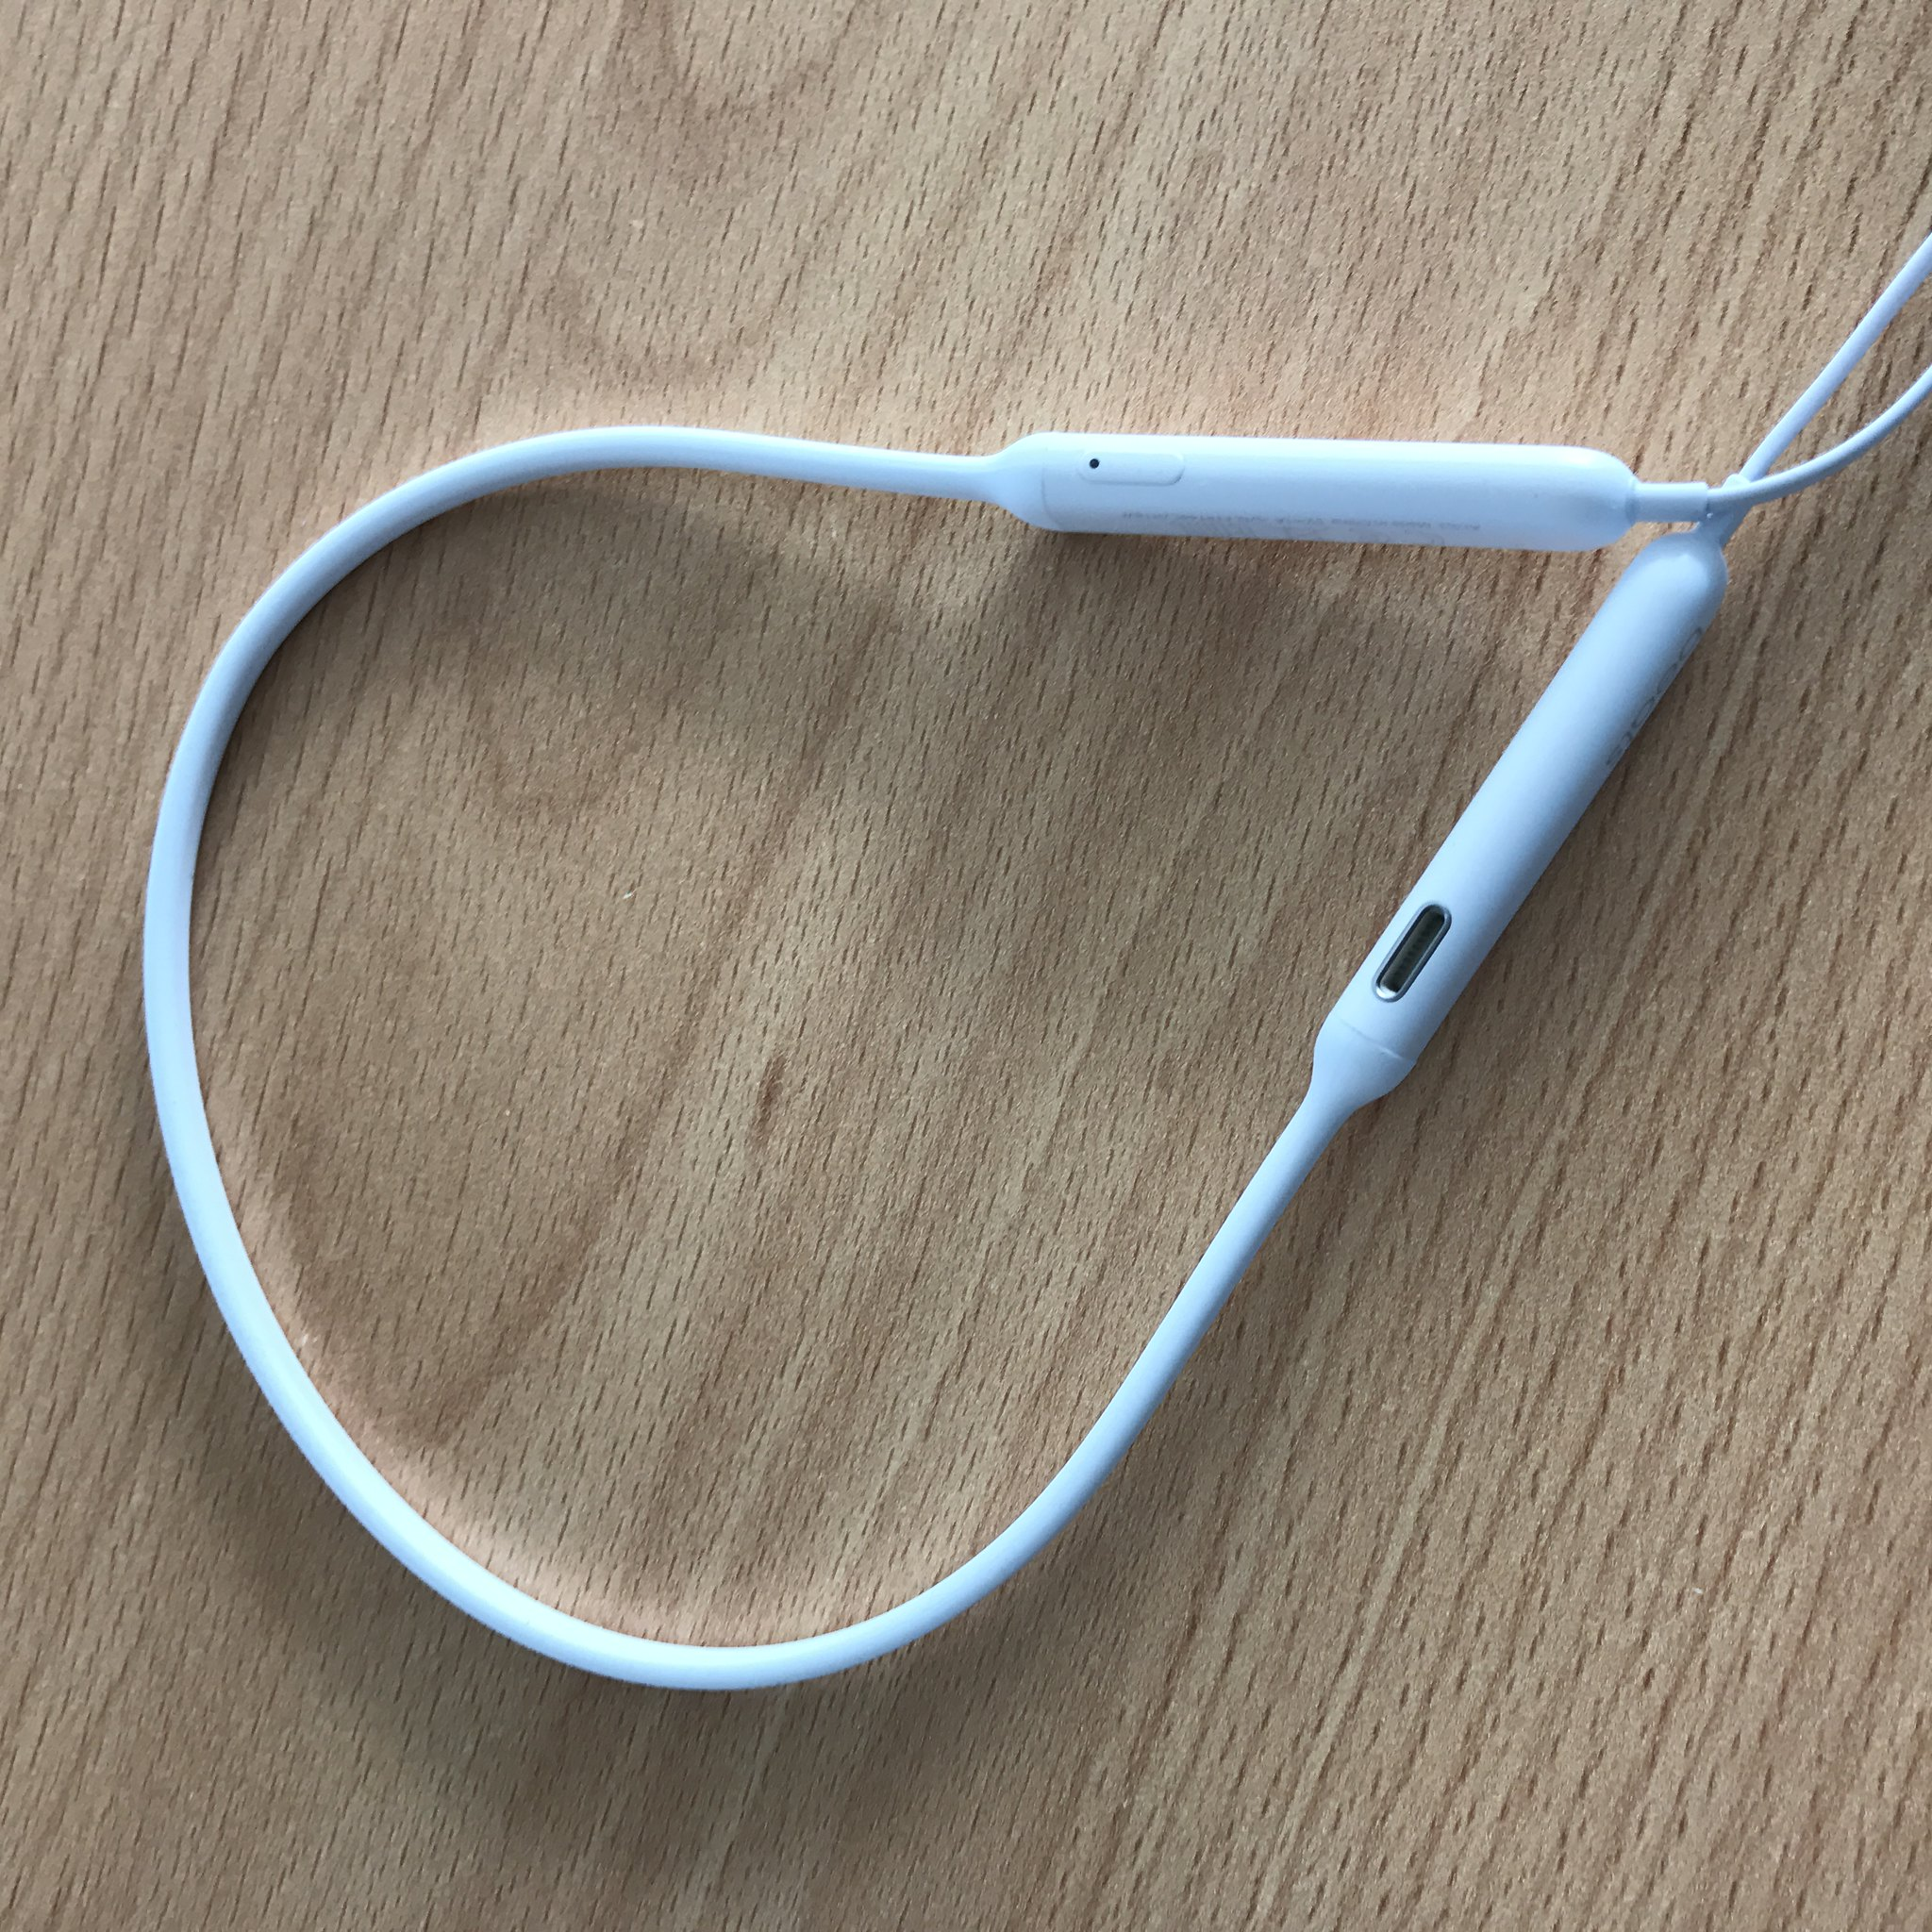 BeatsX Neckband and batteries